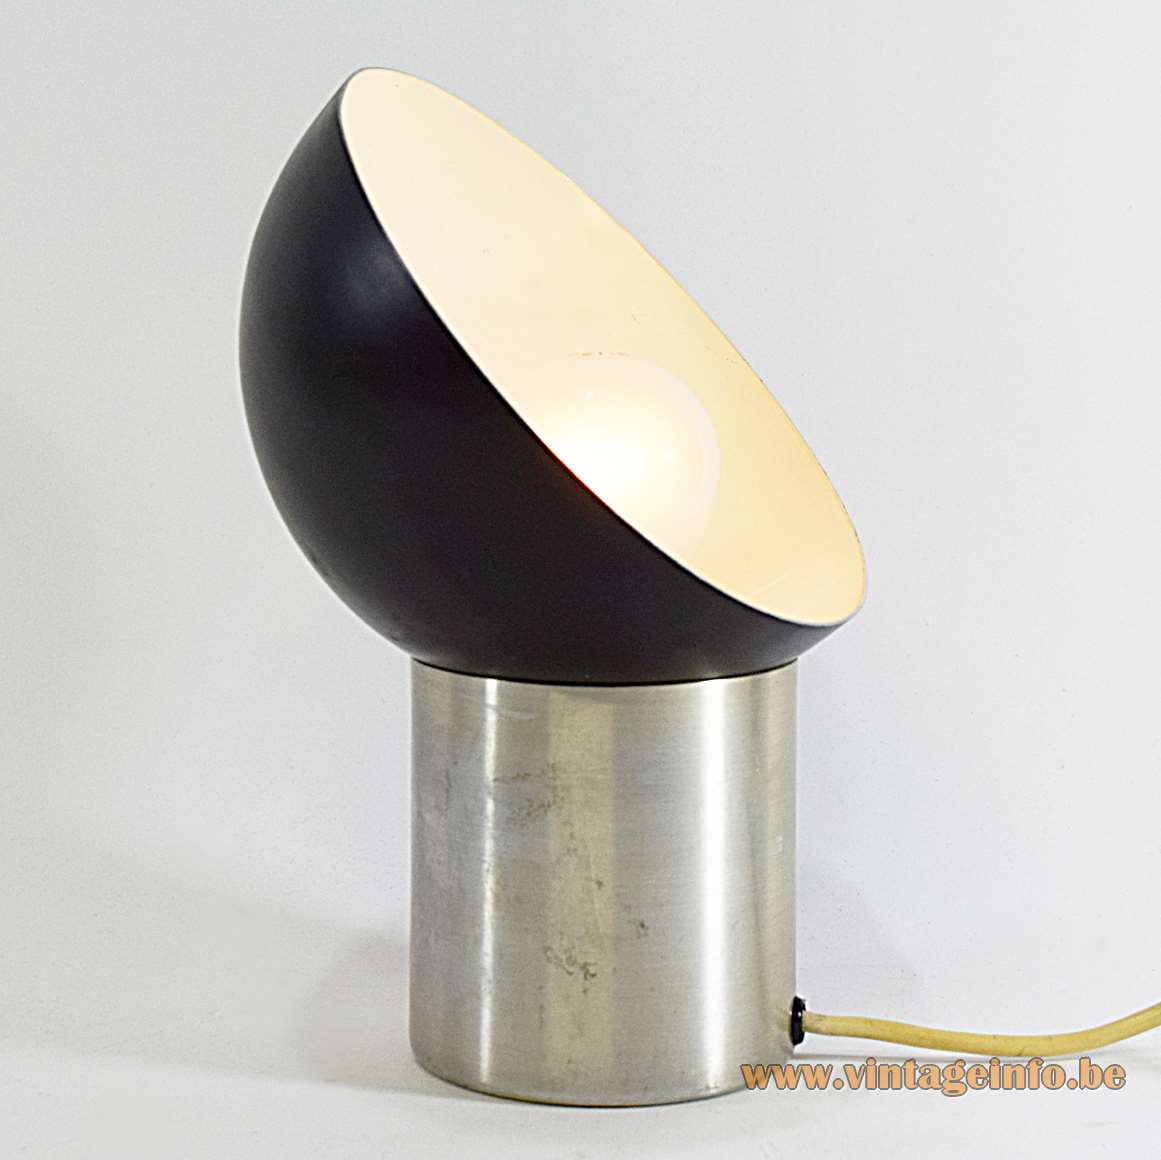 Display Table Lamp